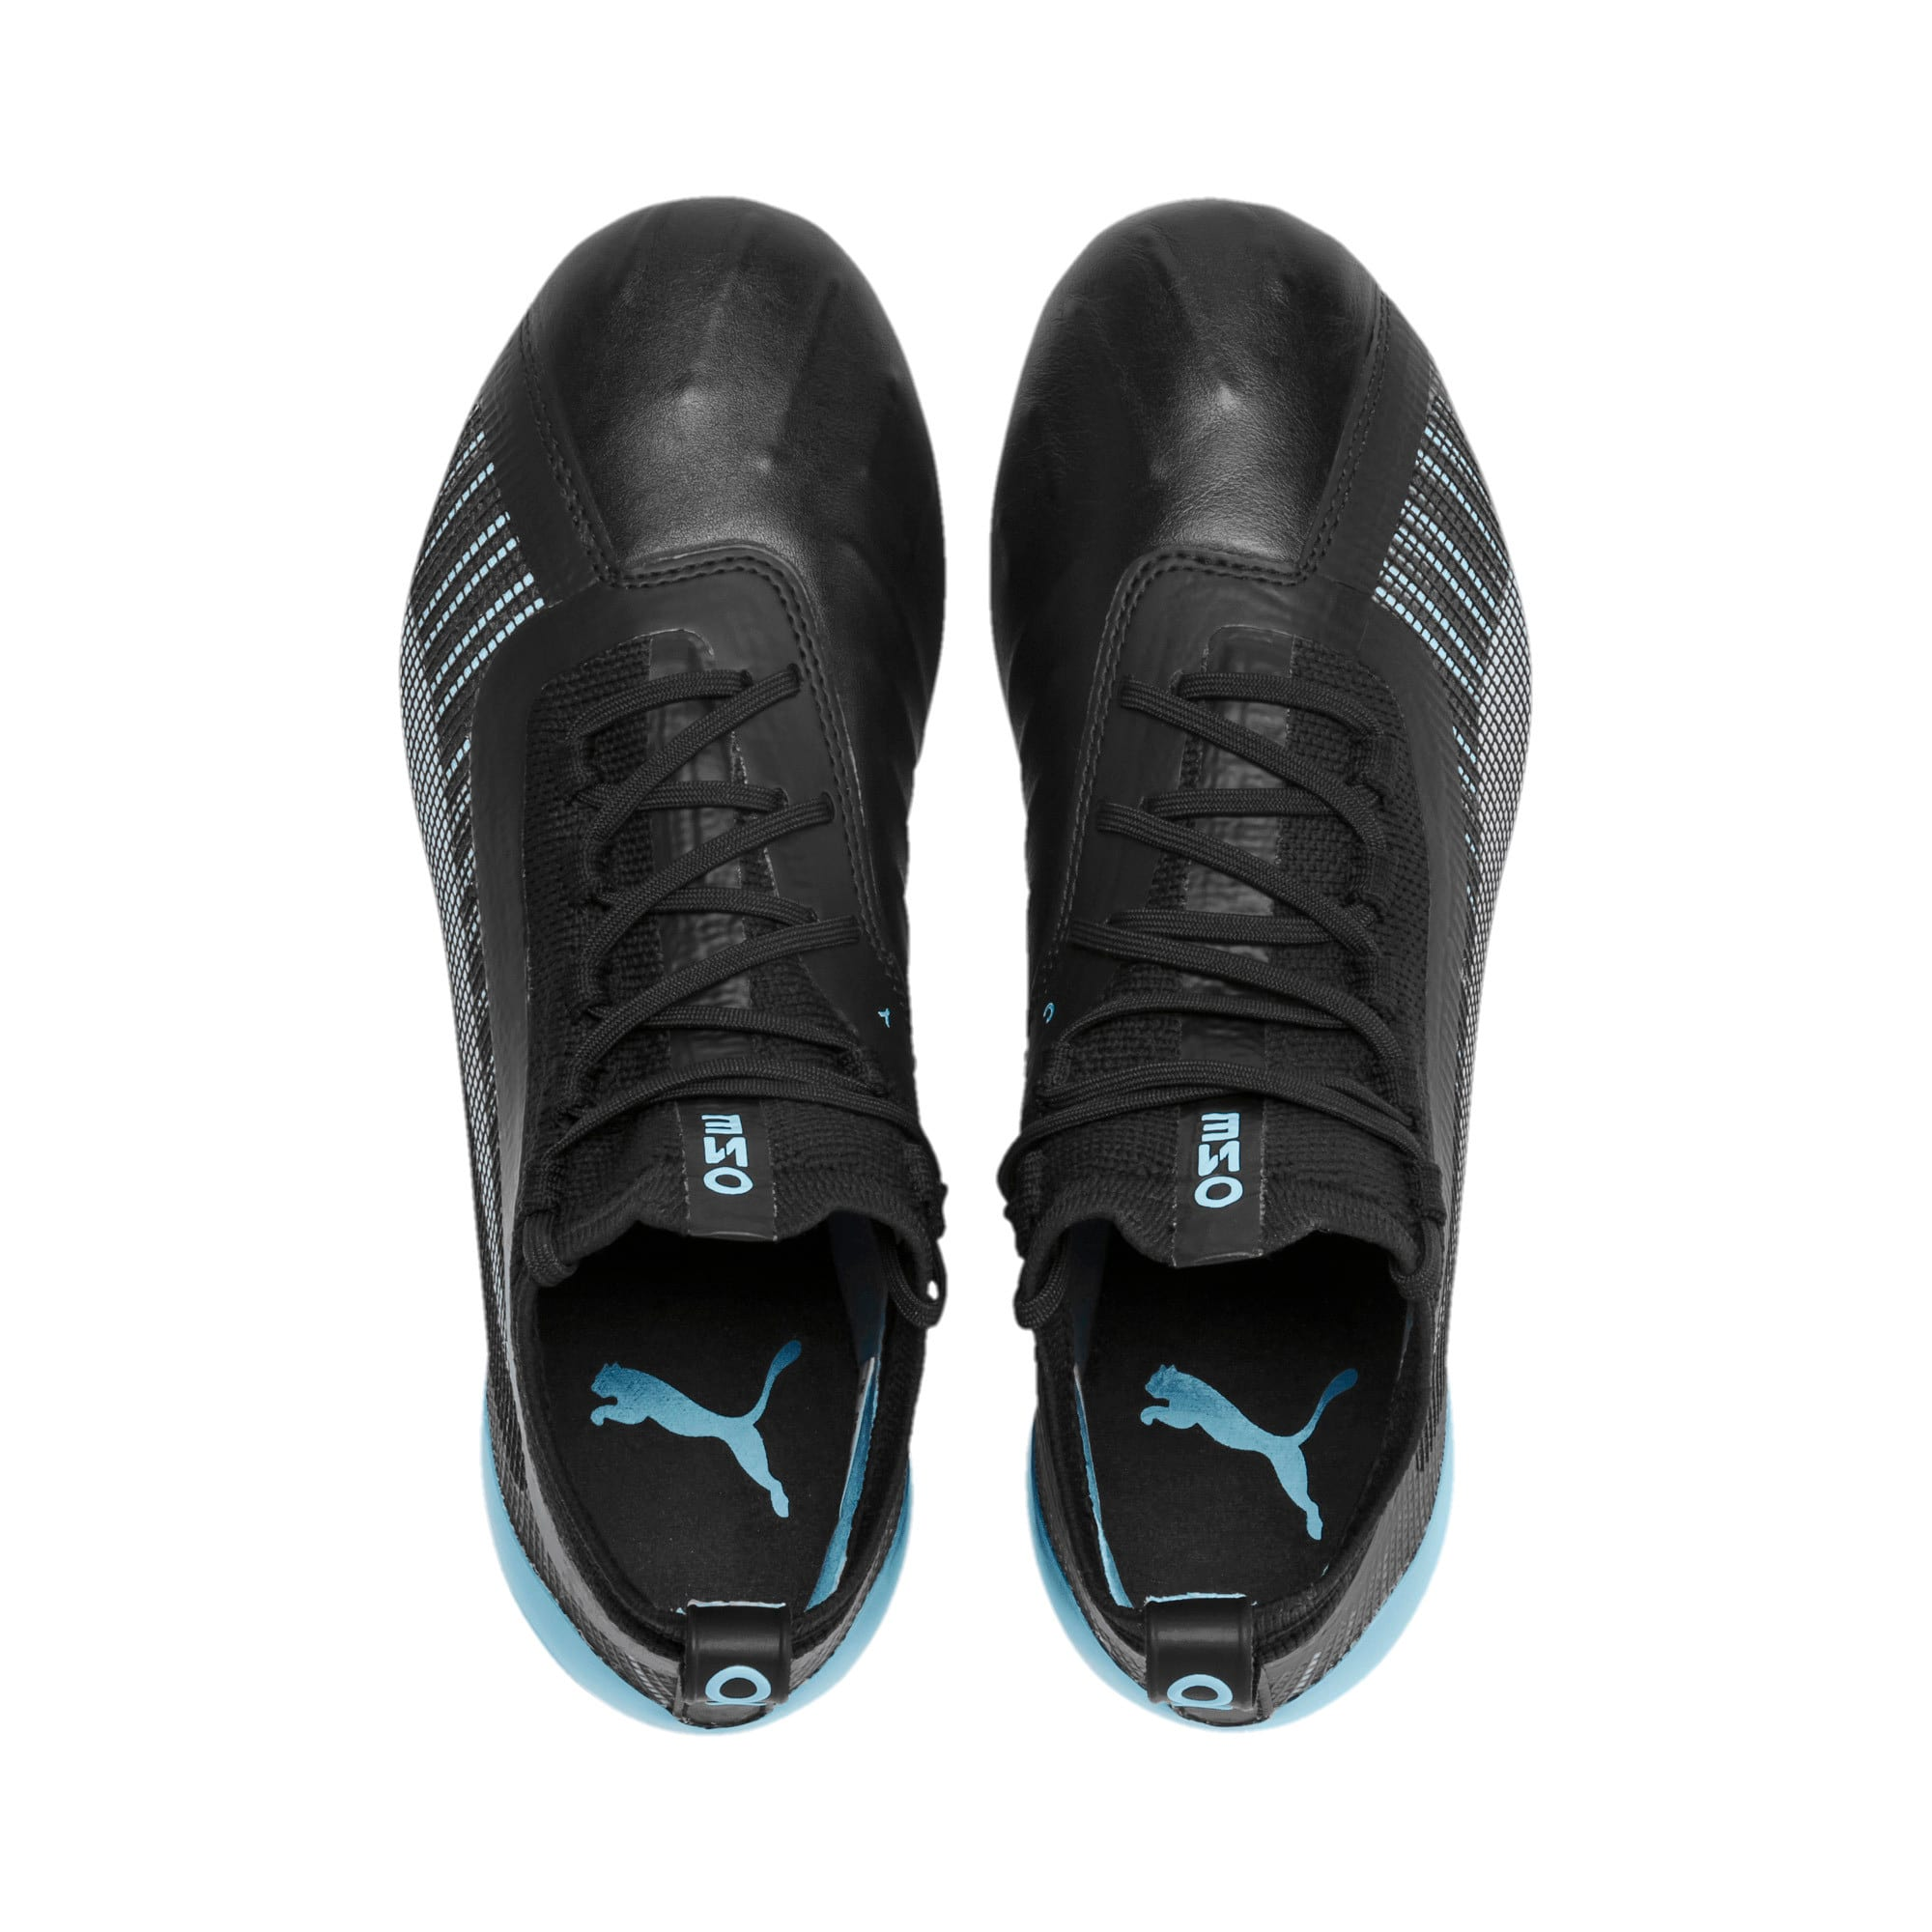 Thumbnail 6 of PUMA ONE 5.1 City Youth Football Boots, Black-Sky Blue-Puma White, medium